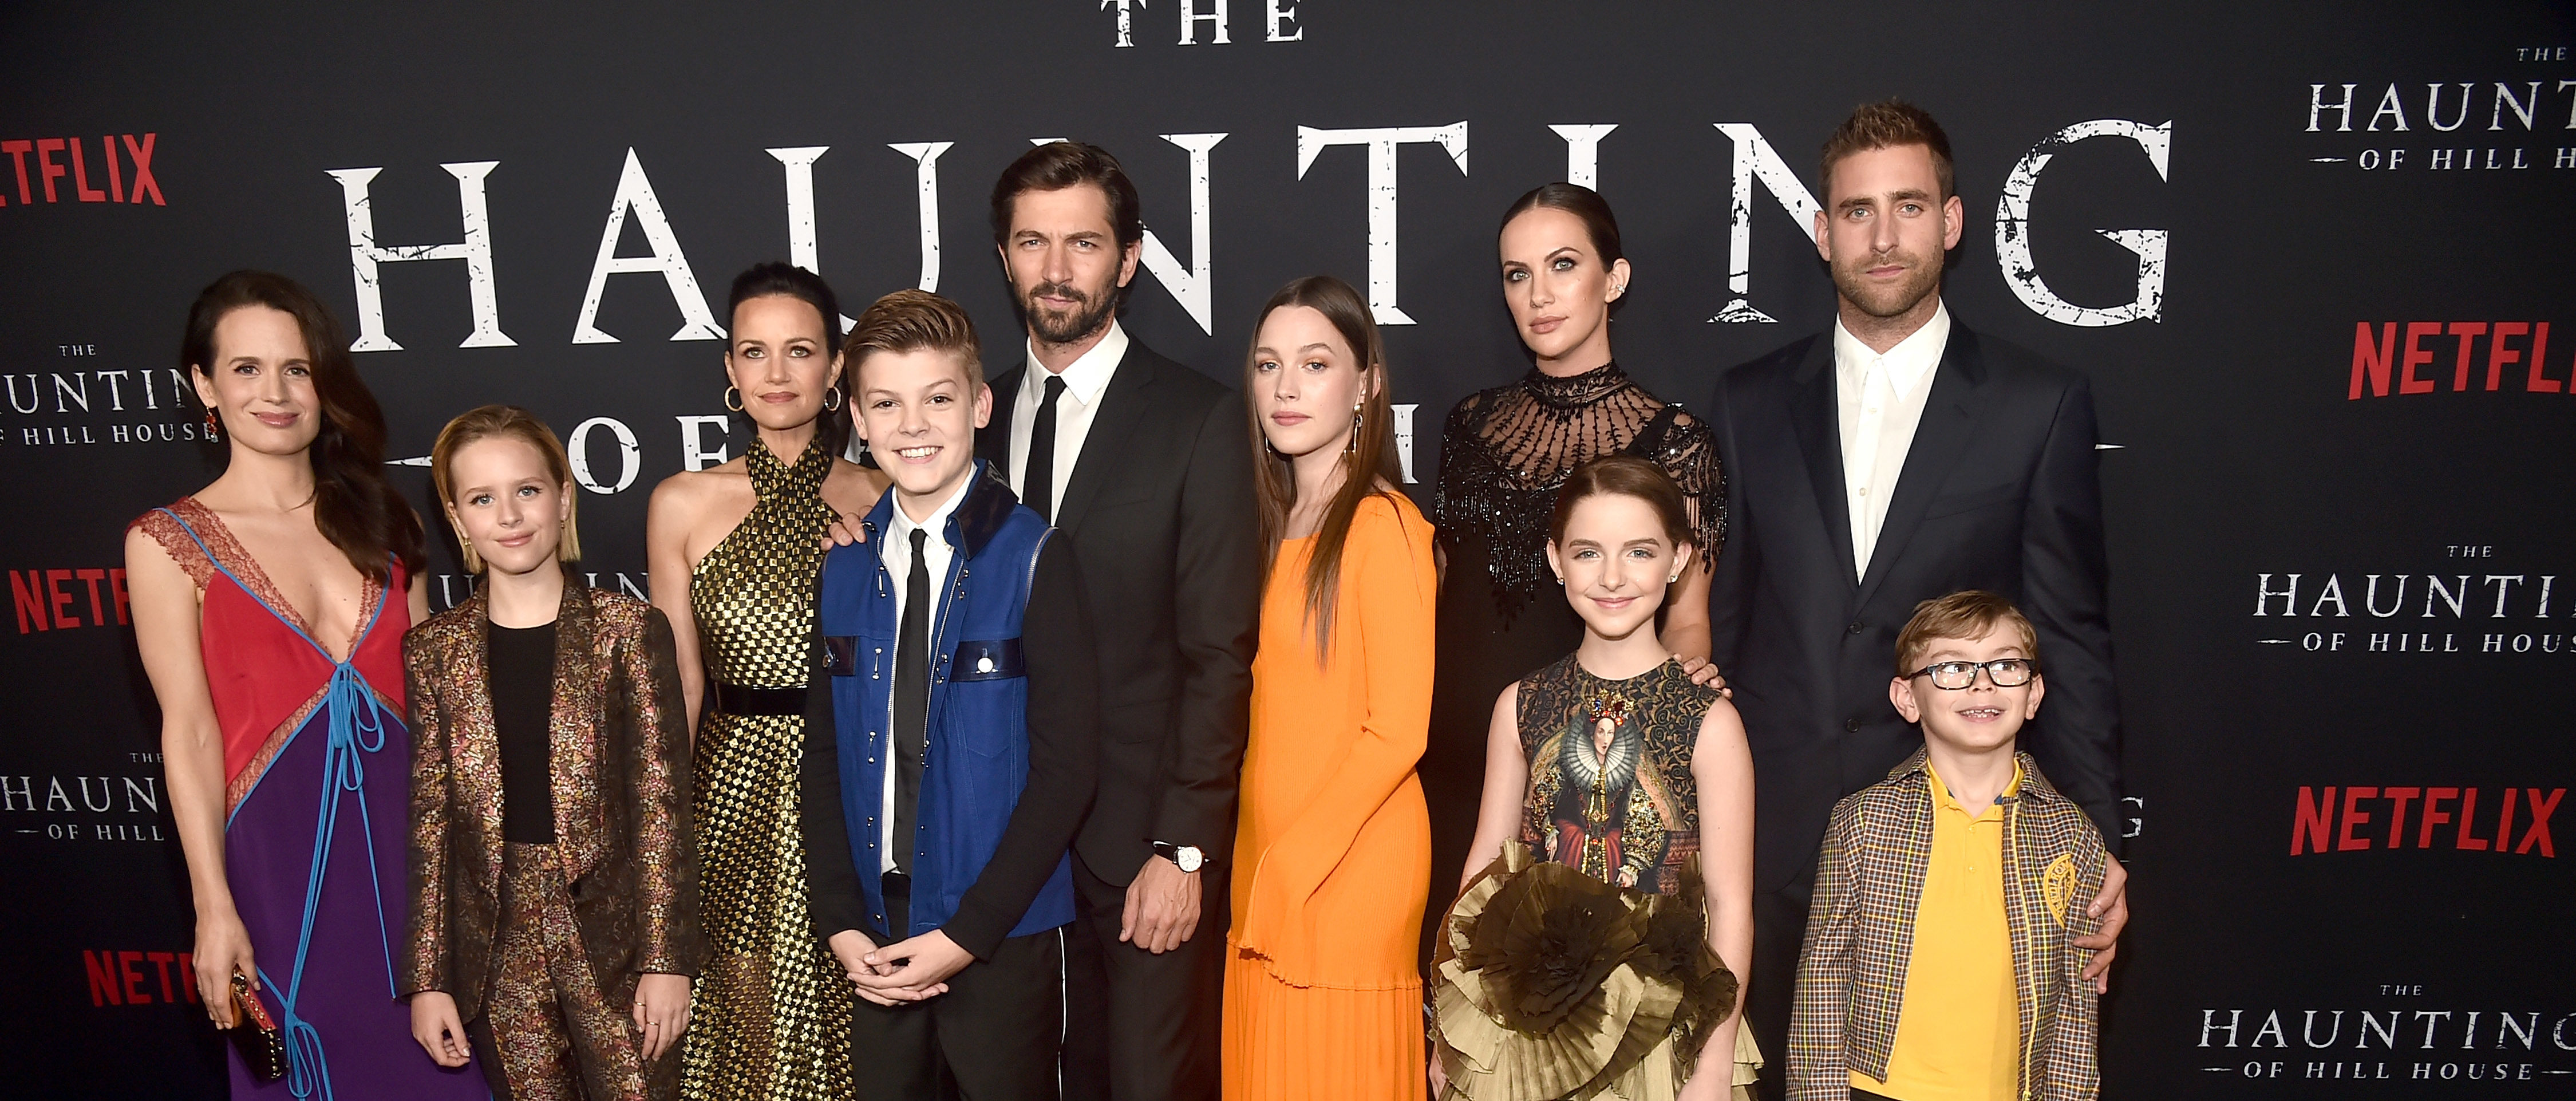 """HOLLYWOOD, CA - Elizabeth Reaser, Lulu Wilson, Carla Gugino, Paxton Singleton, Michiel Huisman, Victoria Pedretti, Kate Siegel, Mckenna Grace, Oliver Jackson-Cohen and Julian Hilliard attend the premiere of Neflix's """"The Haunting Of Hill House"""" on October 8, 2018 in (Photo by Alberto E. Rodriguez/Getty Images)"""